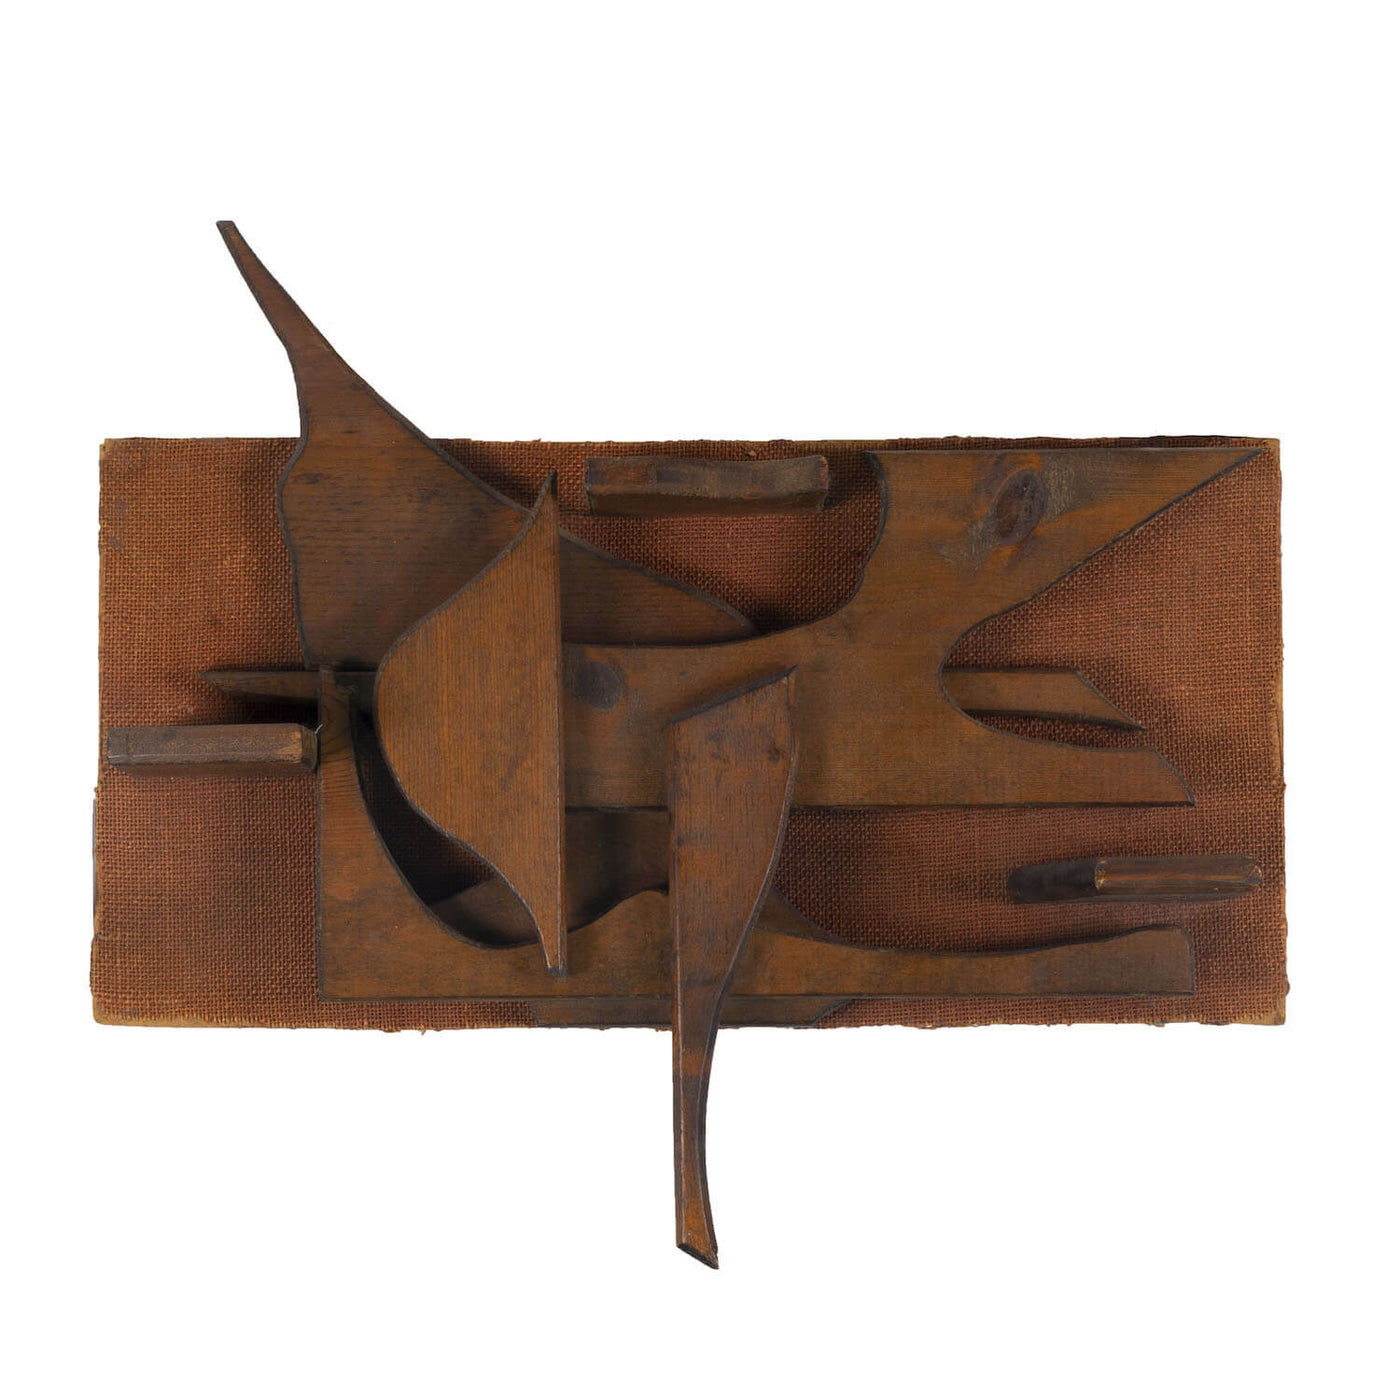 Abstract Wood Construction, Circa 1960